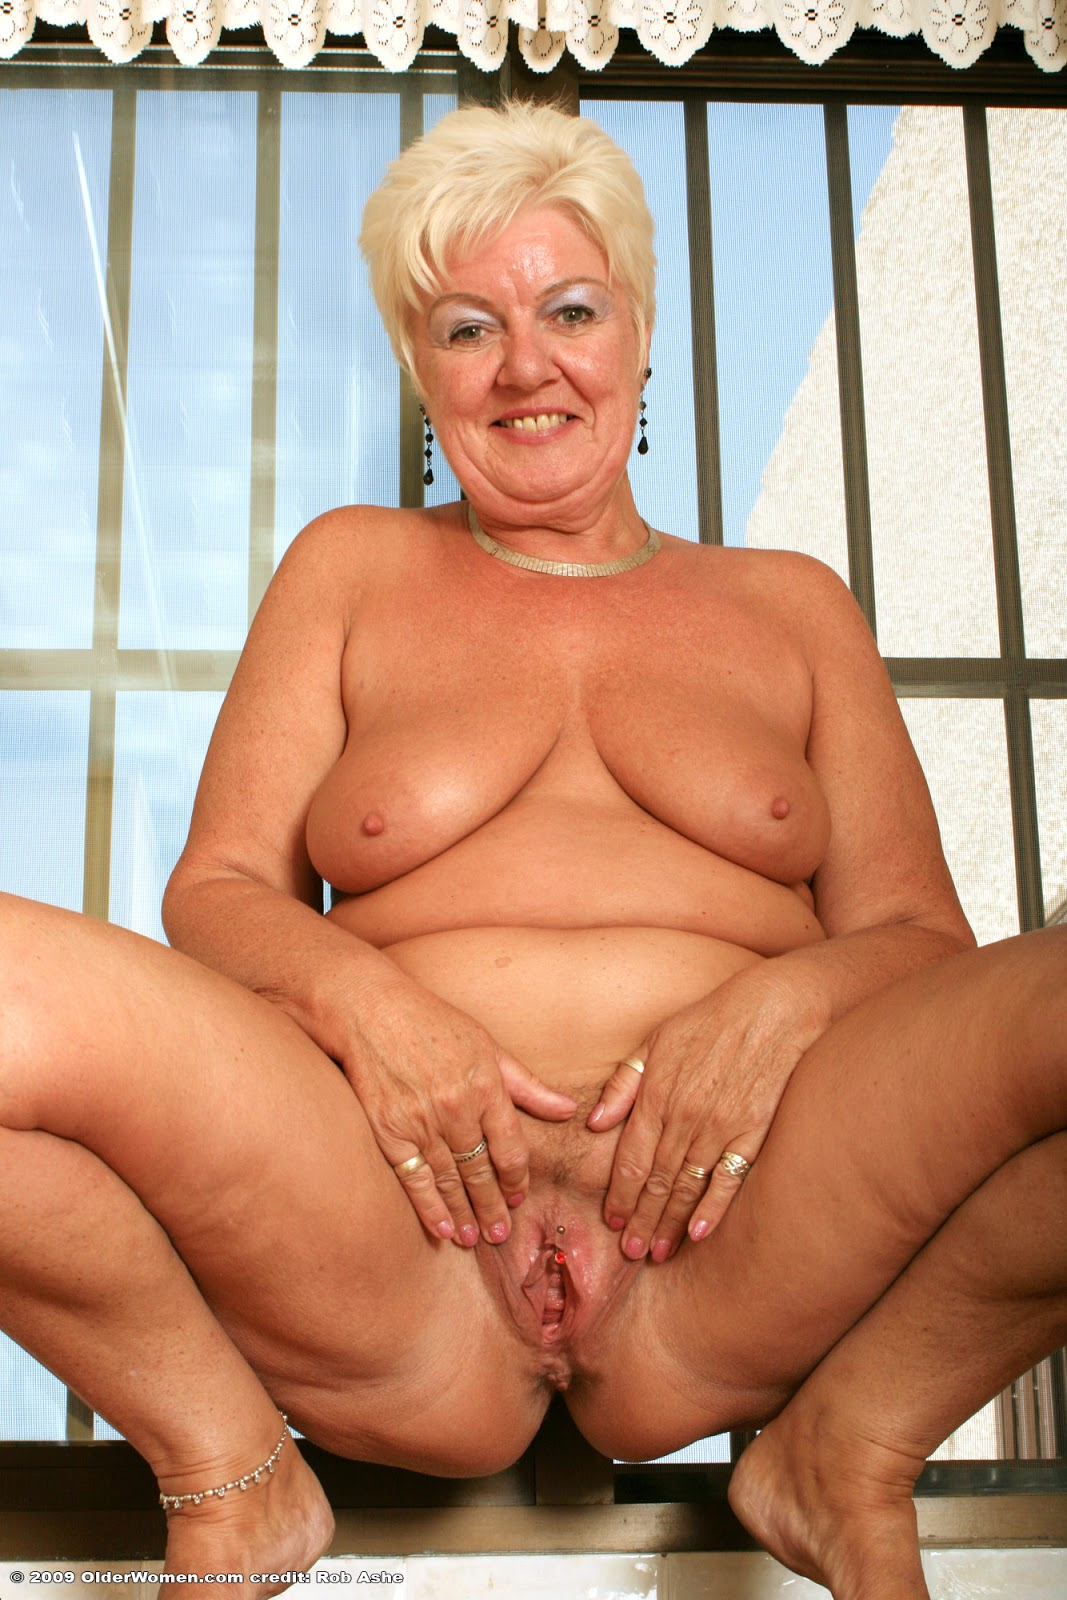 Kelsey a 67 old fuckable BBW GRANNY spreading her huge ole pink